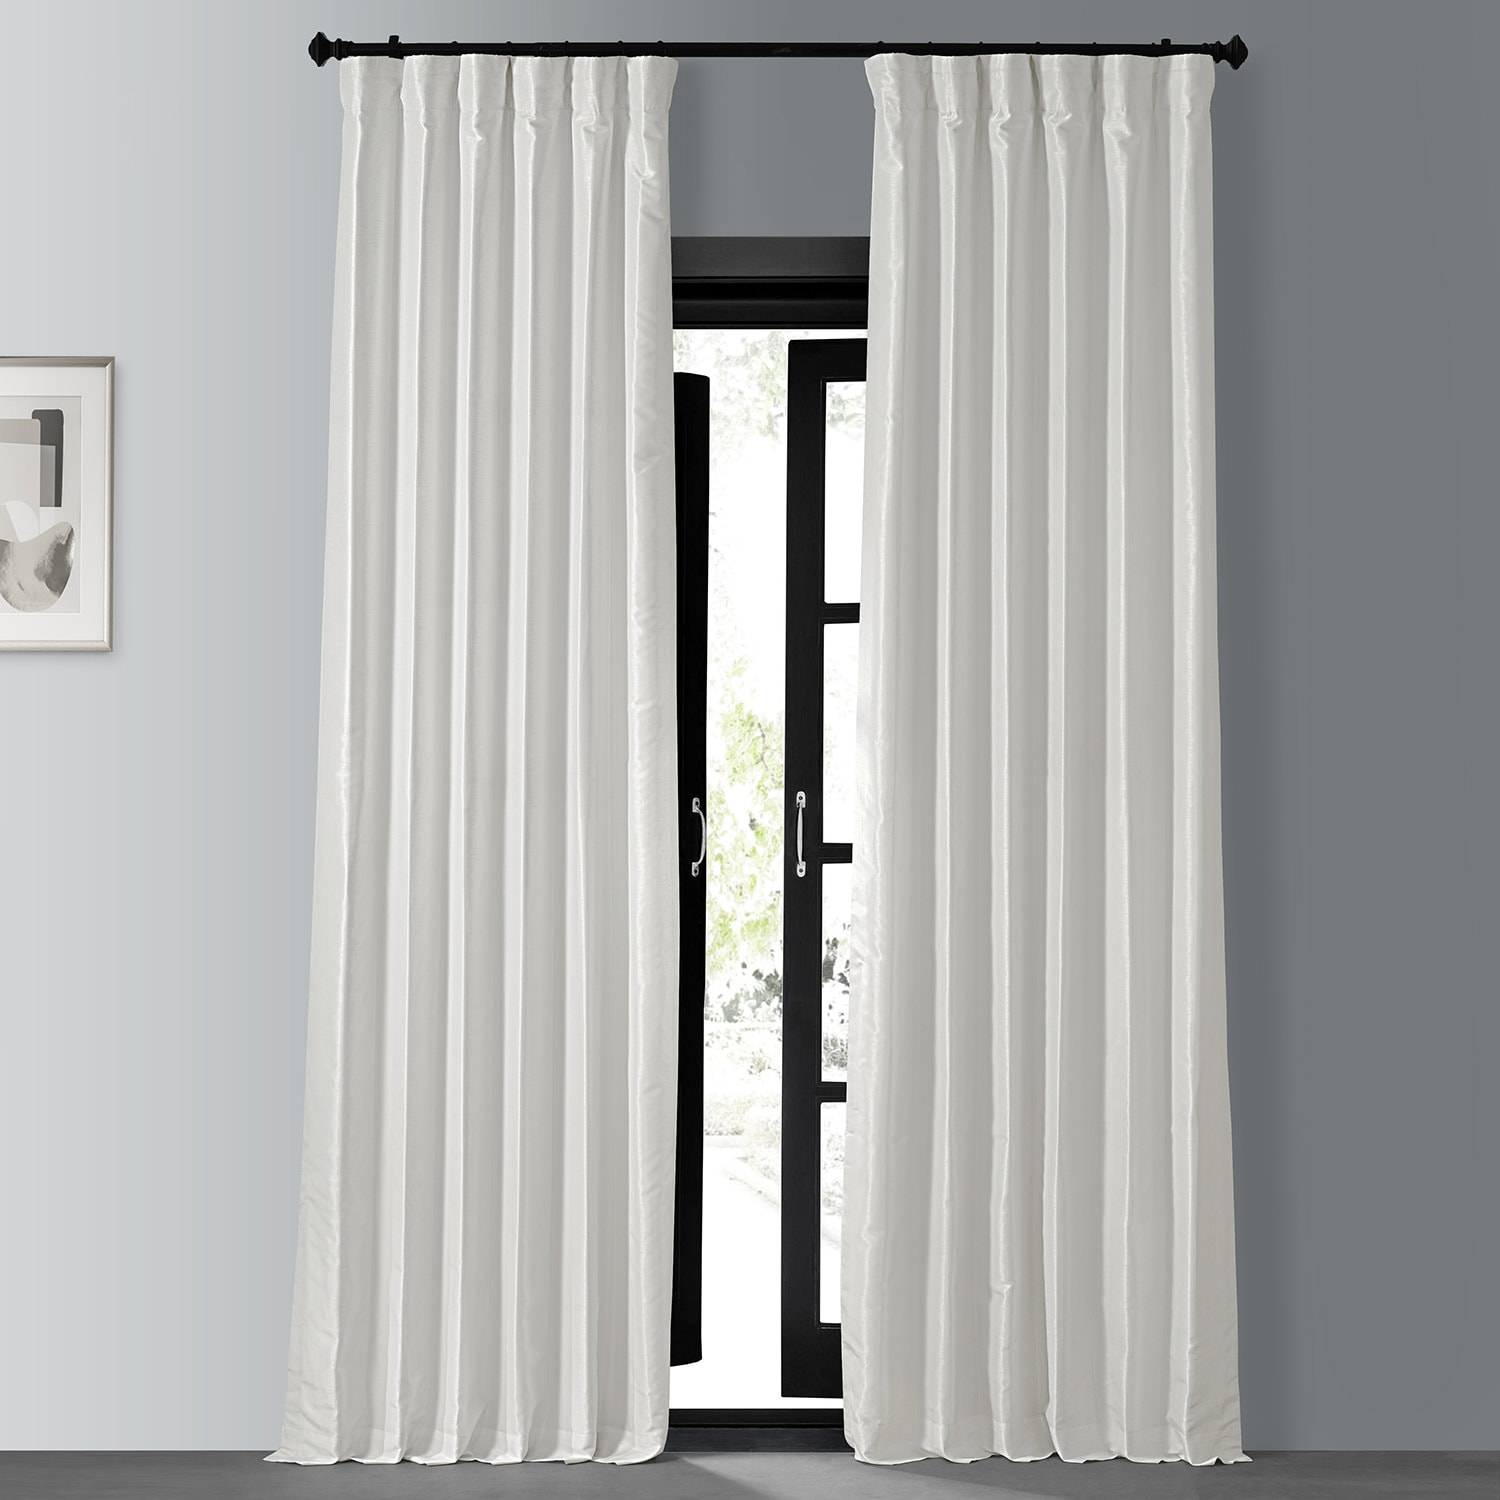 Off White Blackout Vintage Textured Faux Dupioni Curtain